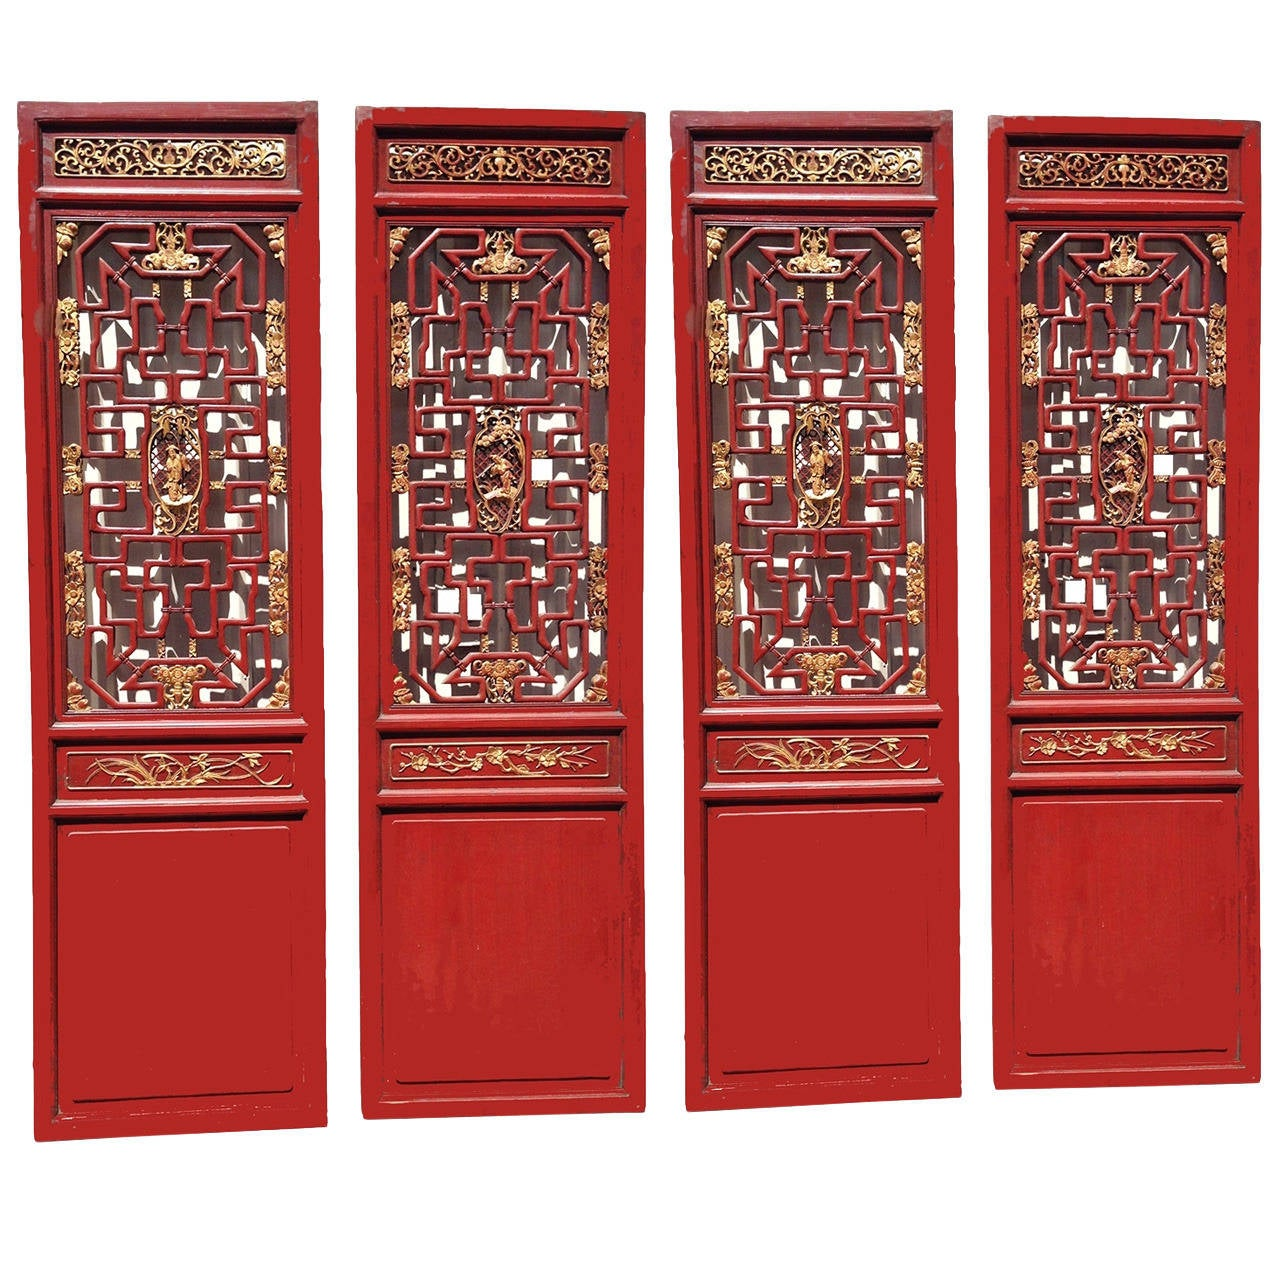 Set of 4 Chinese Antique Carved Doors, Screen, Red and Gilt, 19th Century  at 1stdibs - Set Of 4 Chinese Antique Carved Doors, Screen, Red And Gilt, 19th